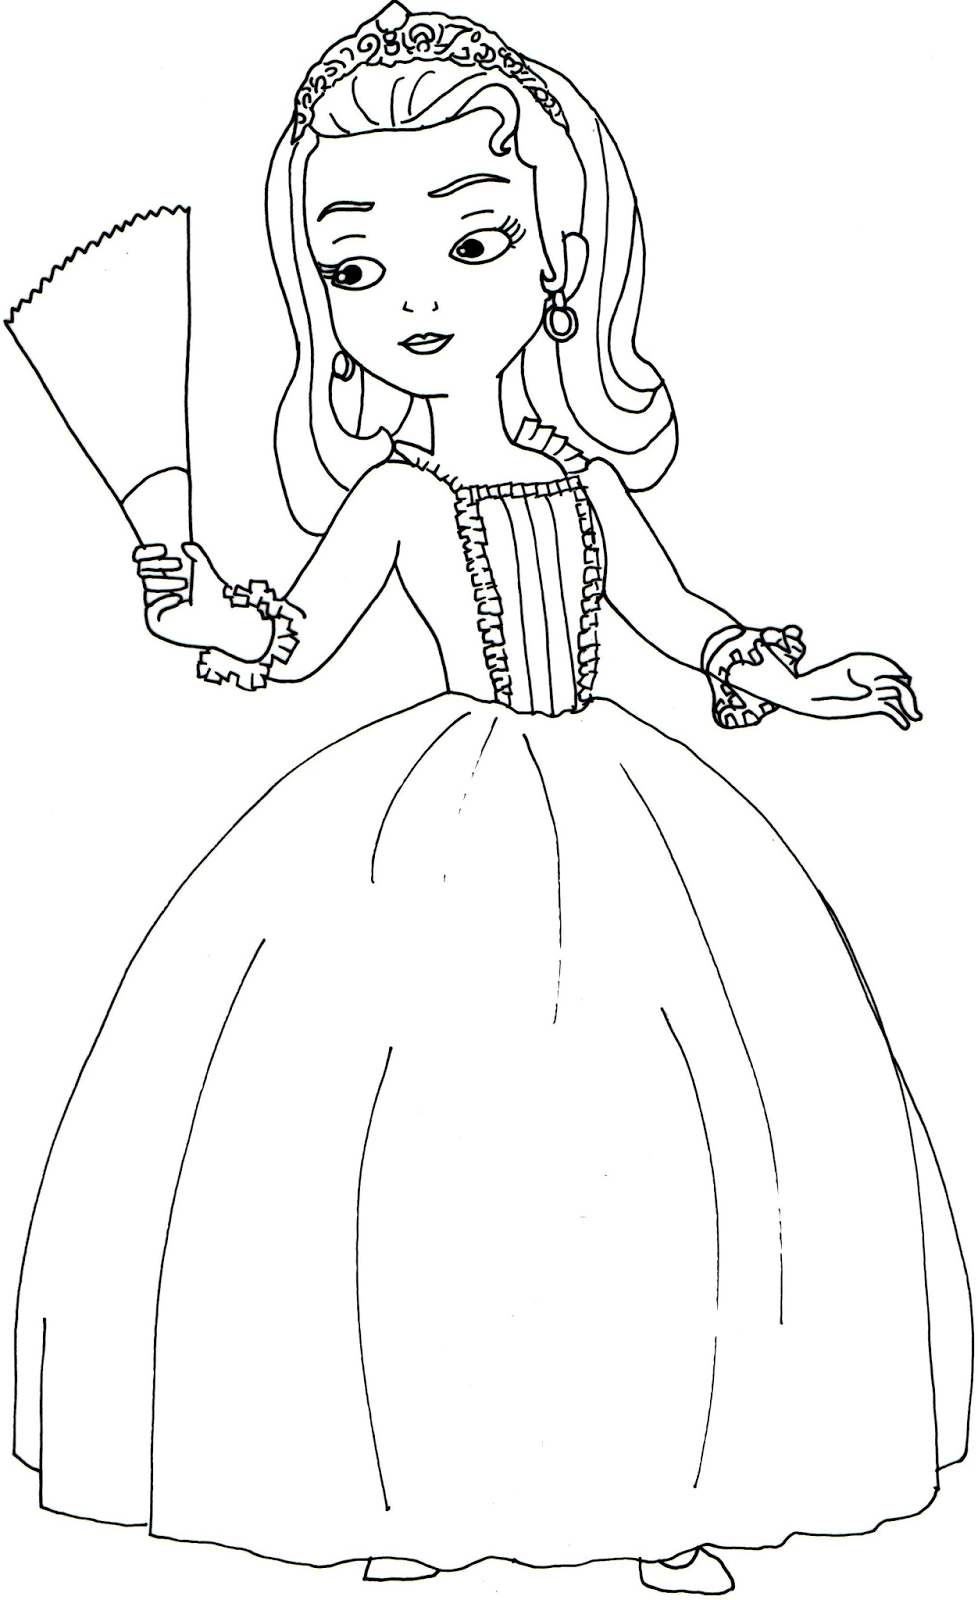 Prinzessin Sofia Die Erste Ausmalbilder : Sofia Coloring Pages Princess Sofia The First Coloring Pages